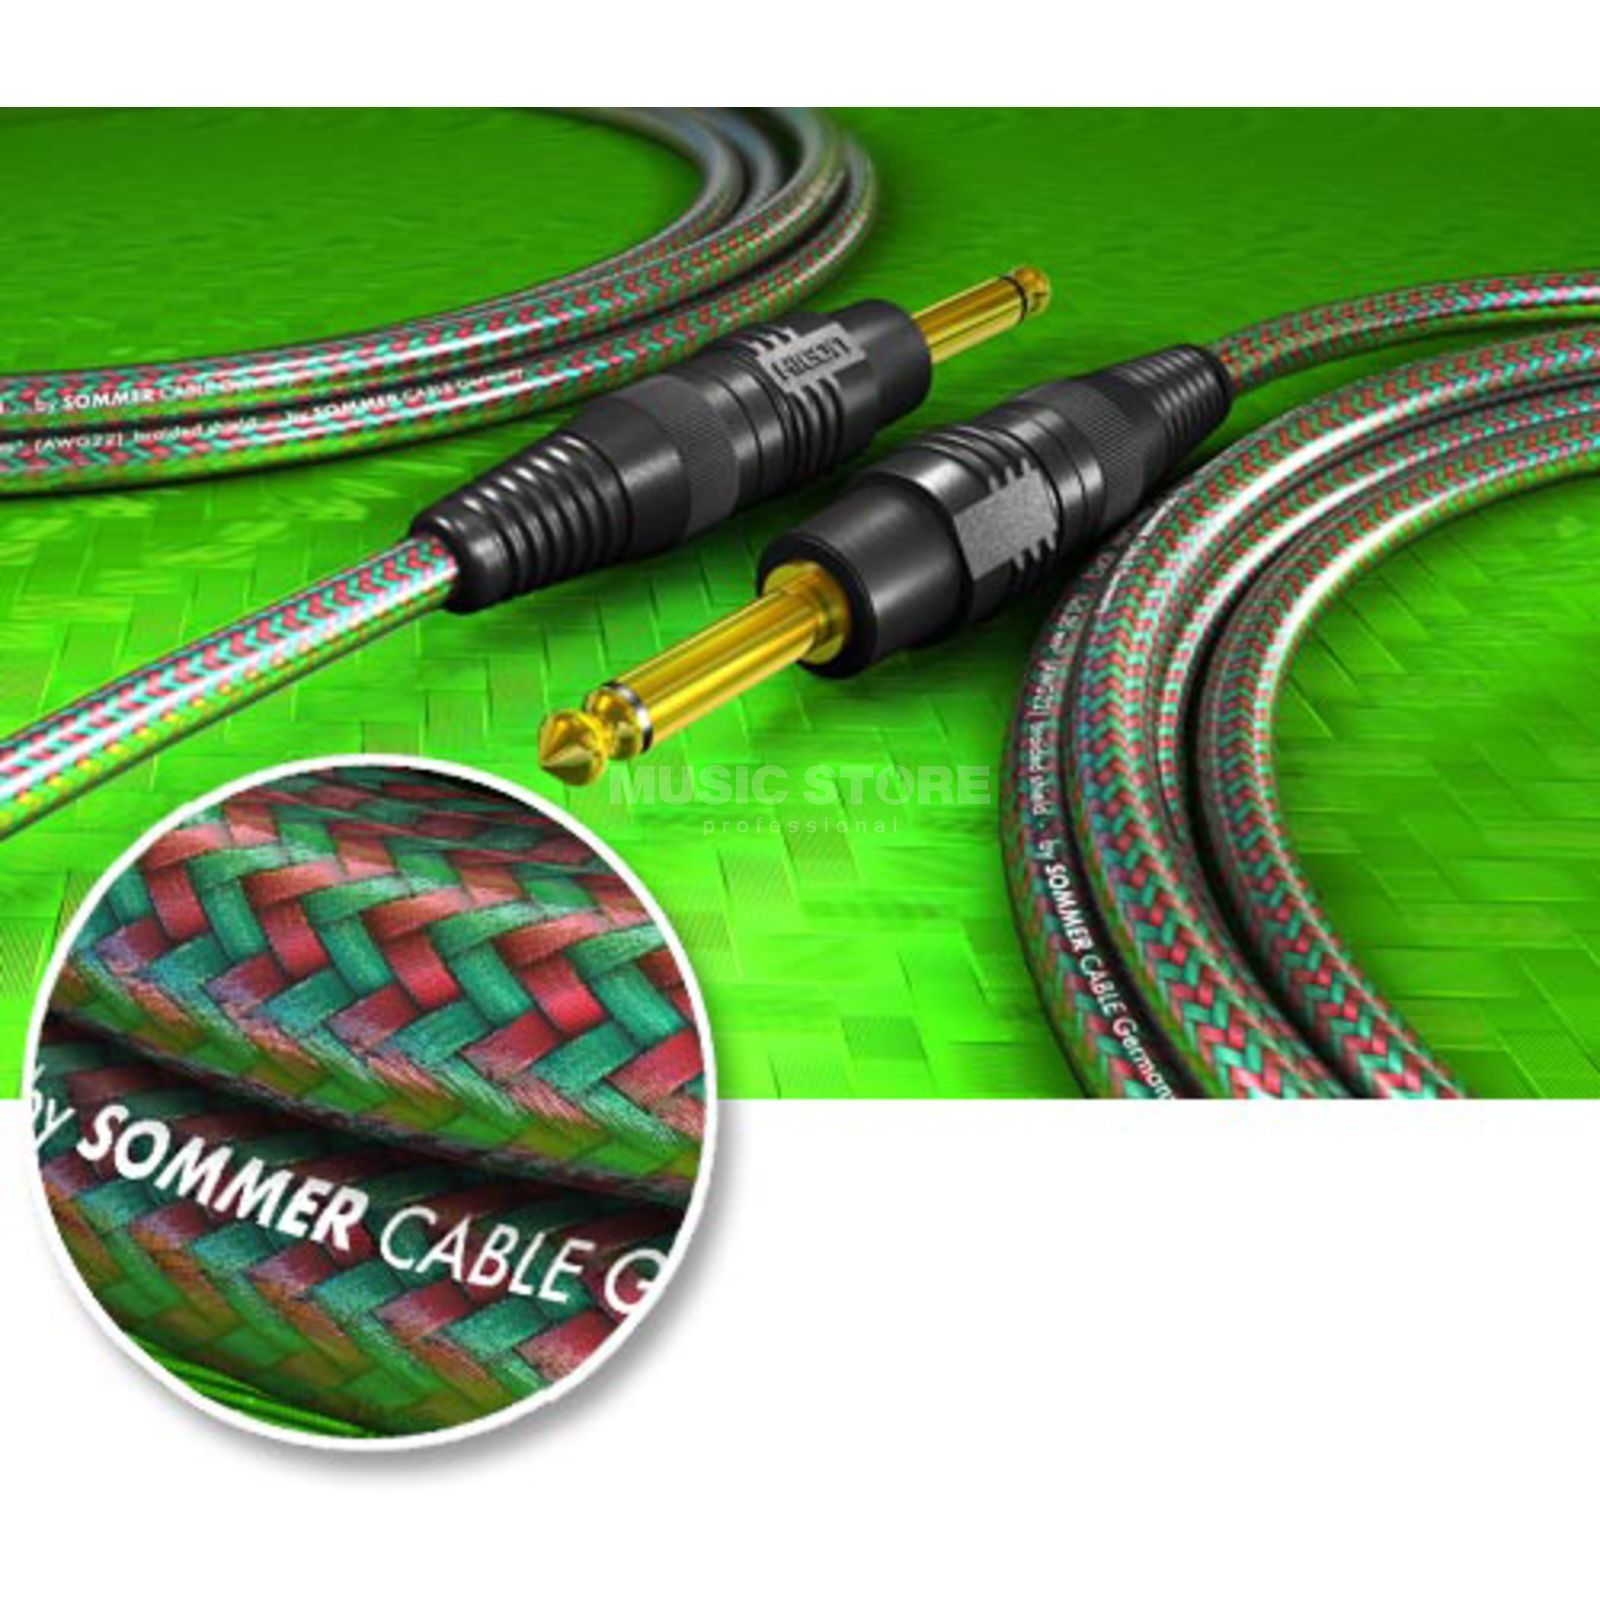 Sommer Cable Instr.-Kabel GRINDYCOP 10m HICON, GBGV-1000 Produktbild